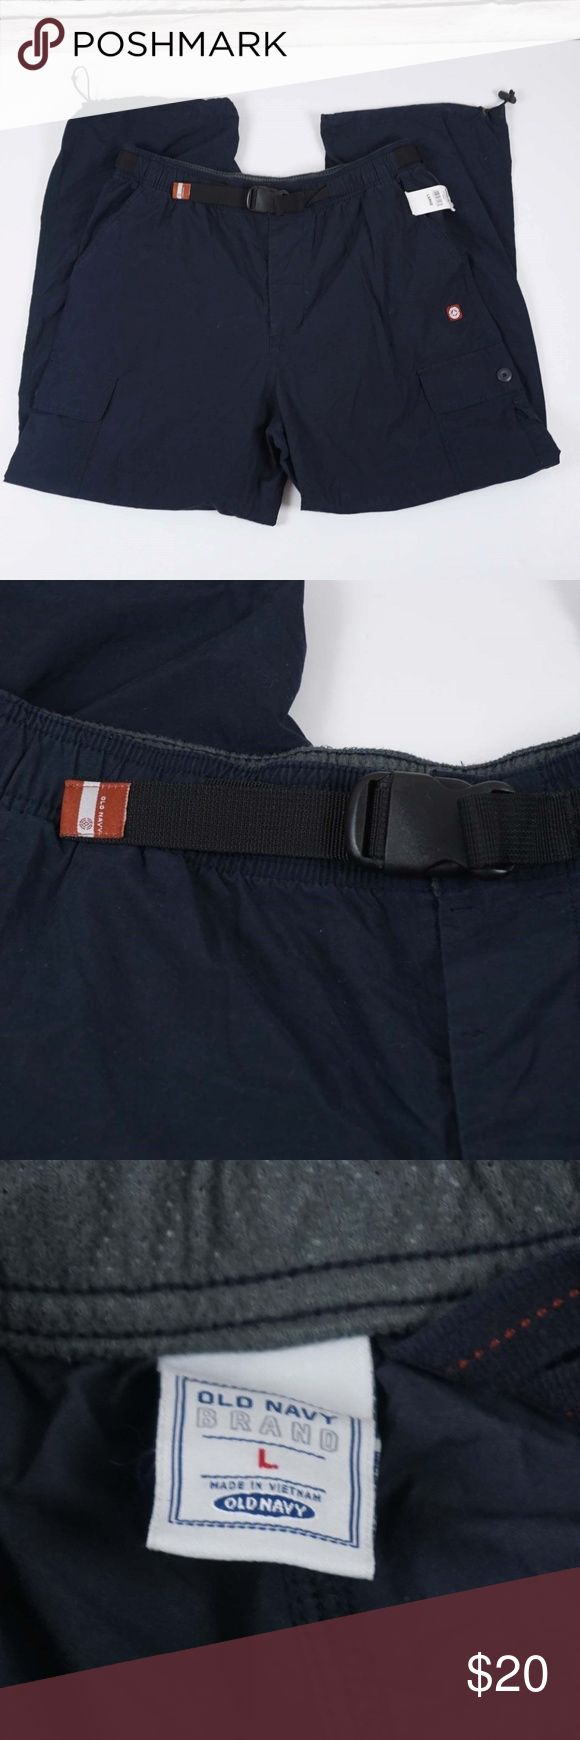 OLD Navy Cargo Pants Belted Blue Size Large New with tags Polyurathane  Not sure it will fit? Take flat measurements of a similar item that fits and compare with the measurements below.  Measurements (flat in inches)  Size: L Across the waist: 17-18 Rise: 13 Inseam: 30 Old Navy Pants Cargo